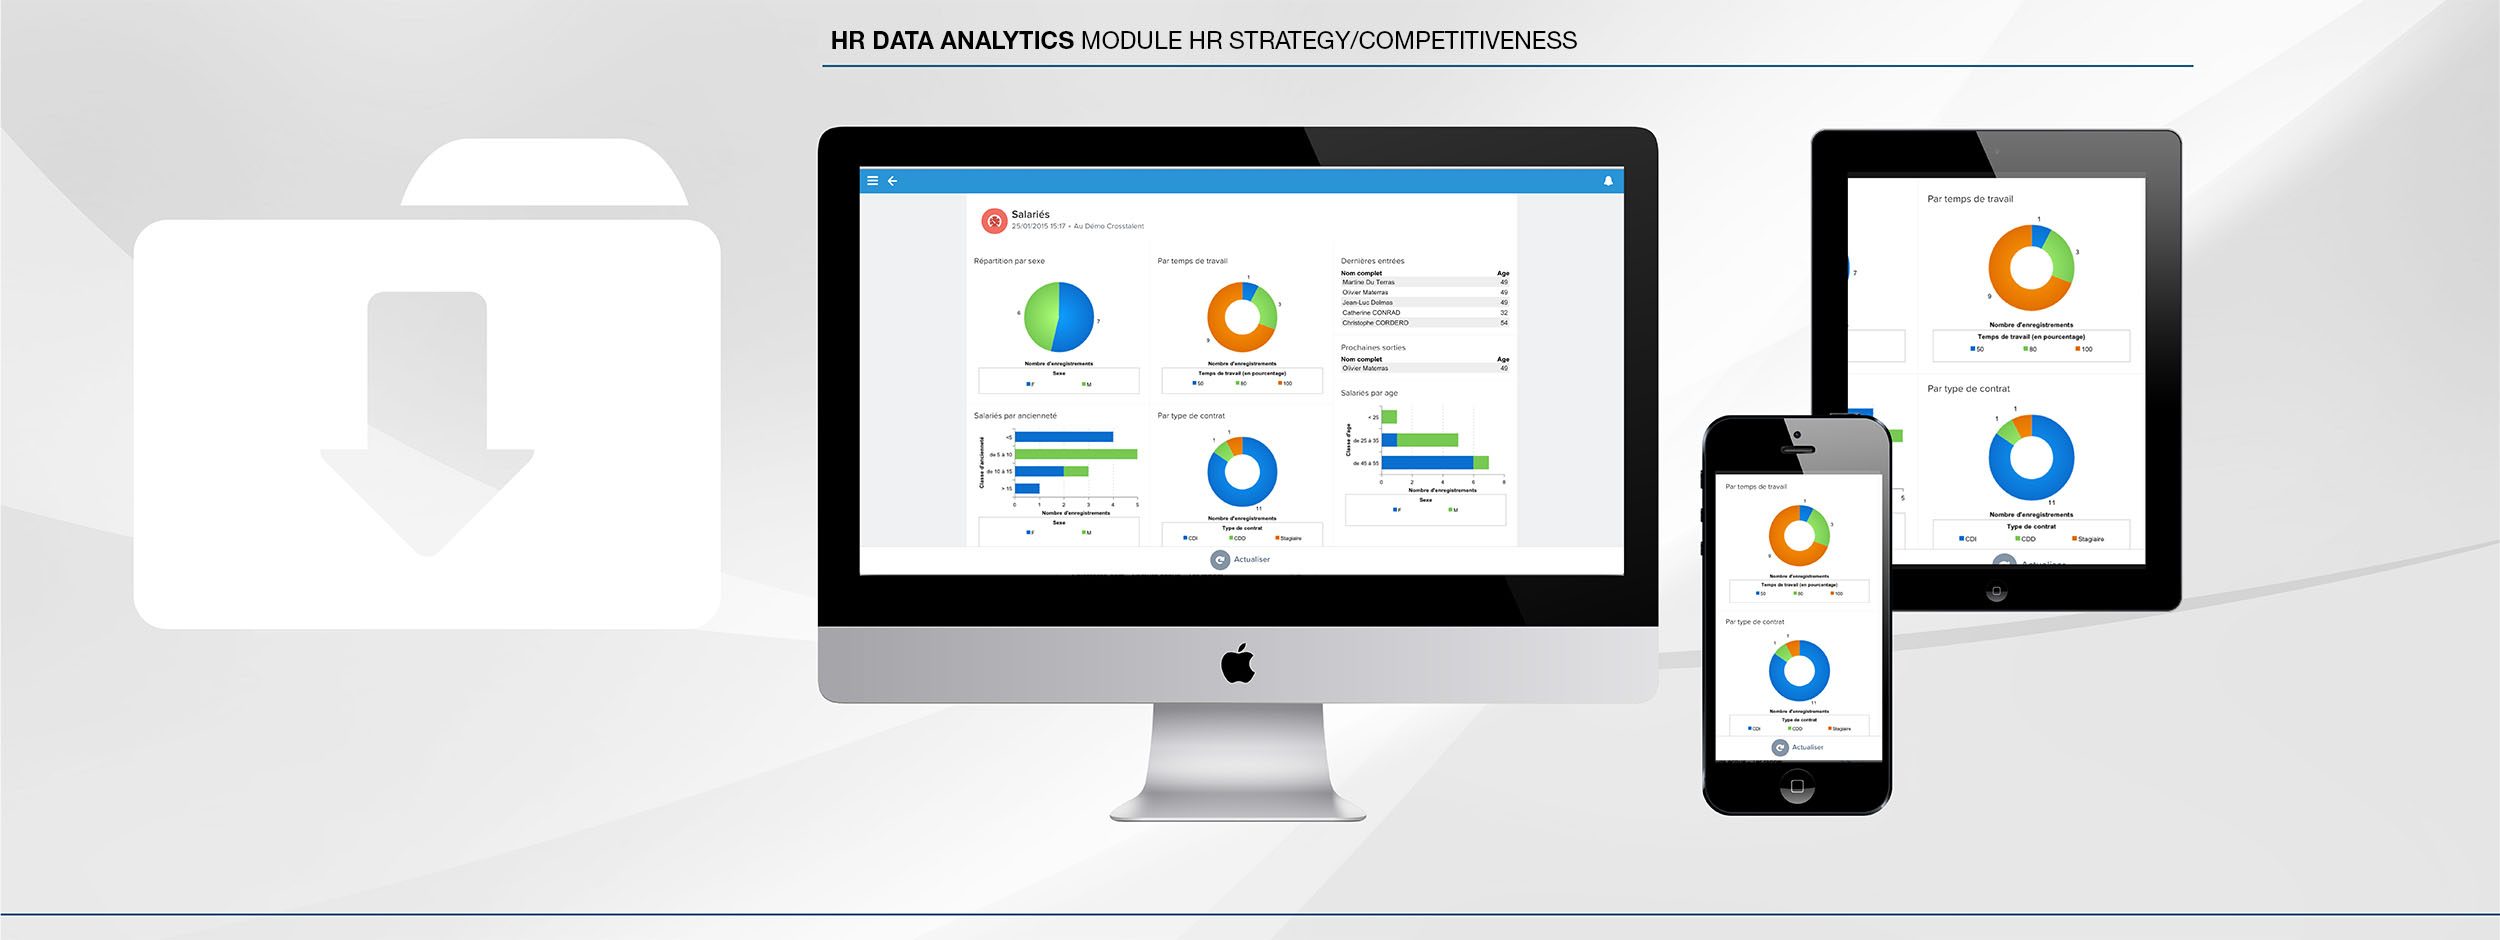 Screenshot HR Strategy/Competitiveness